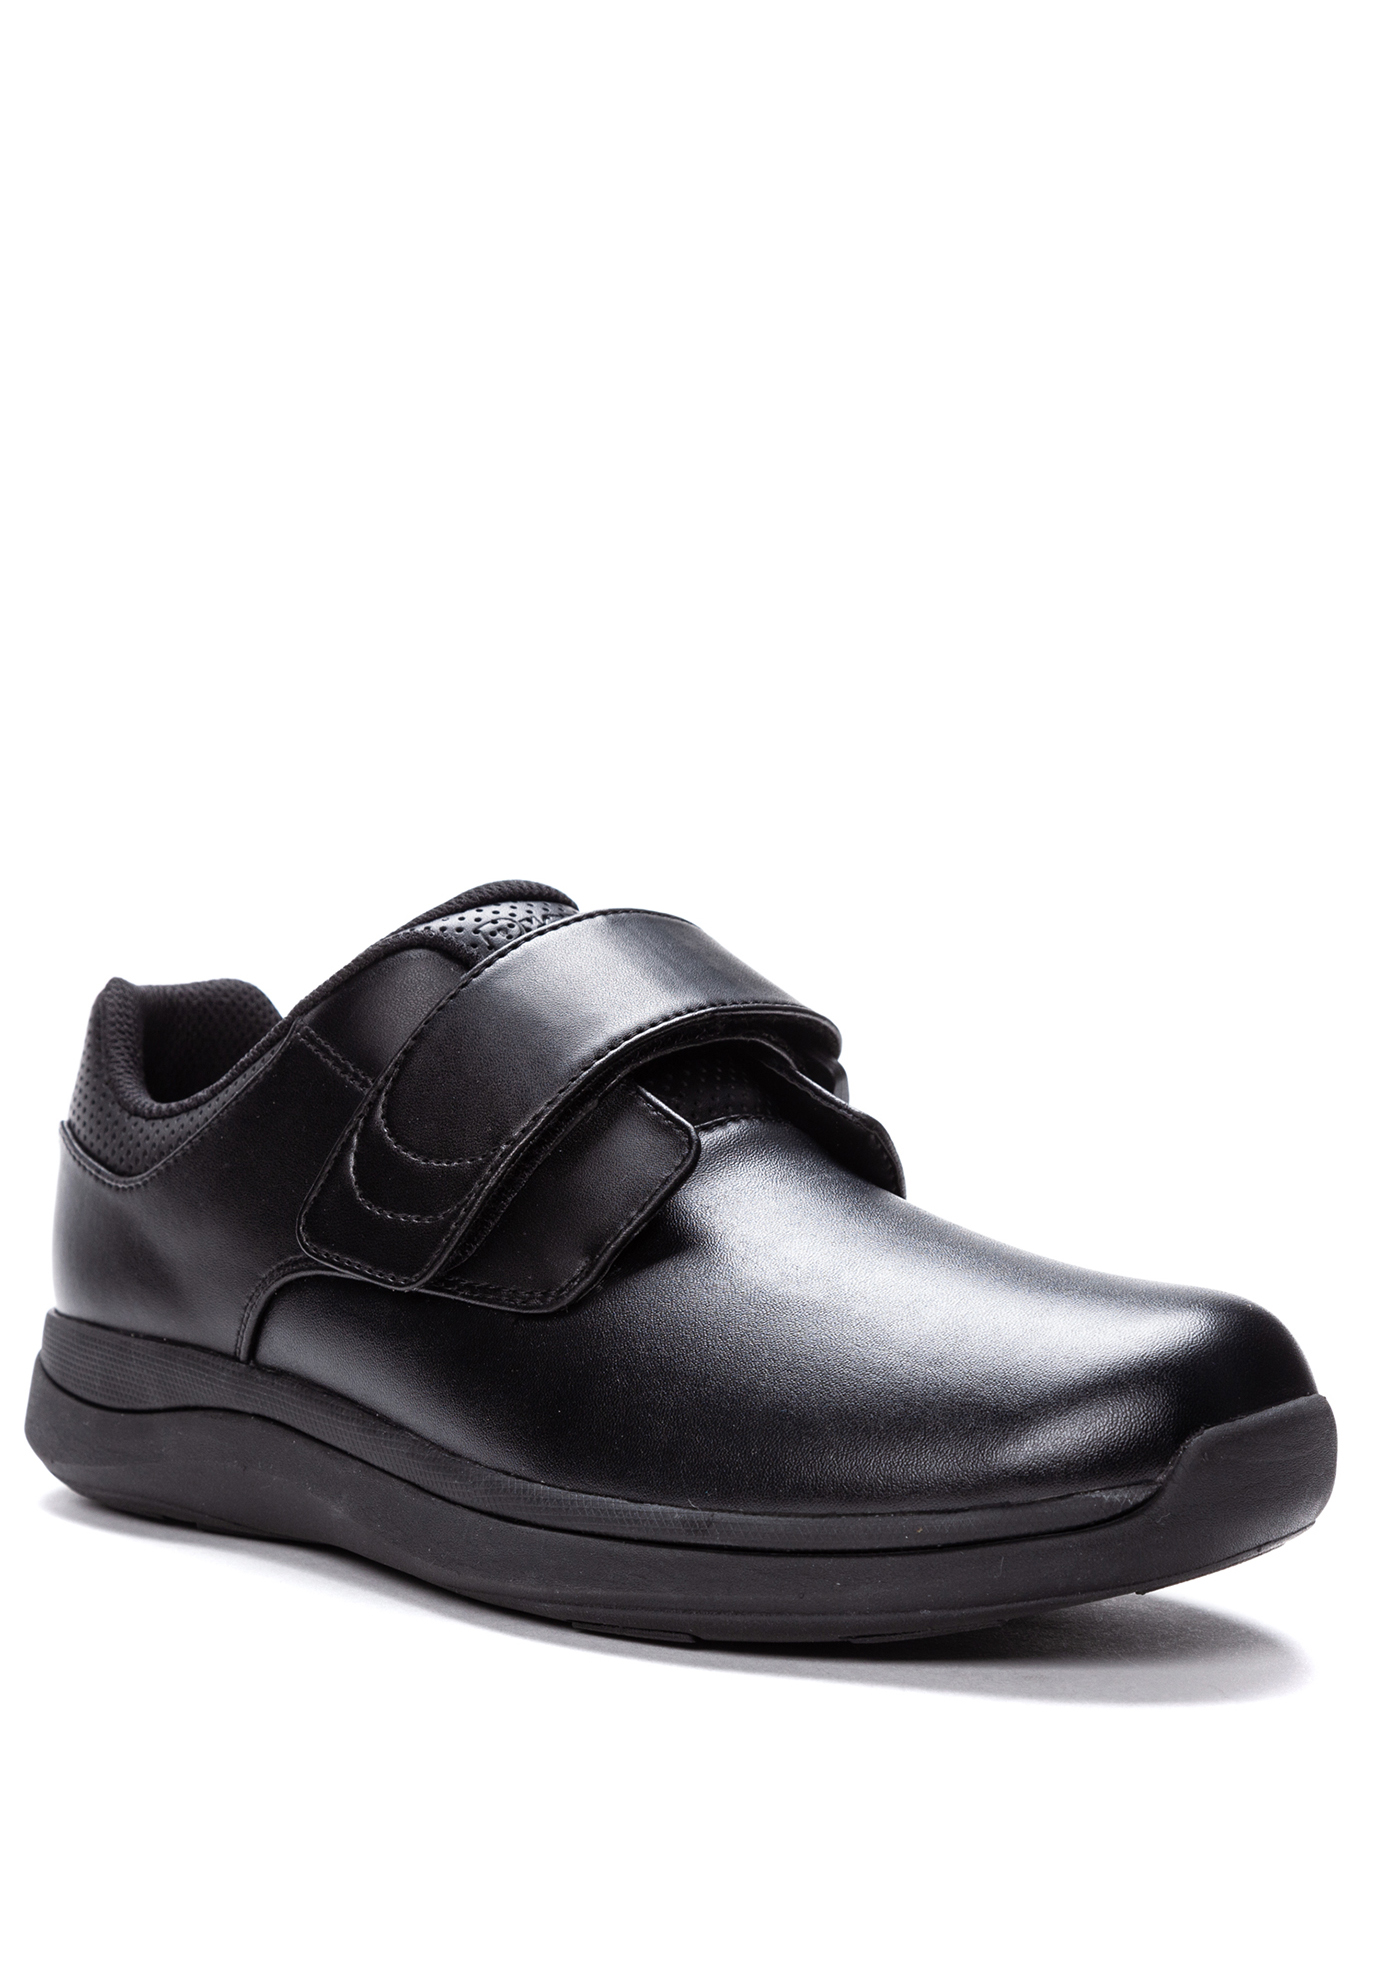 Propet Men's Pierson Strap Dress/Casual Shoes,